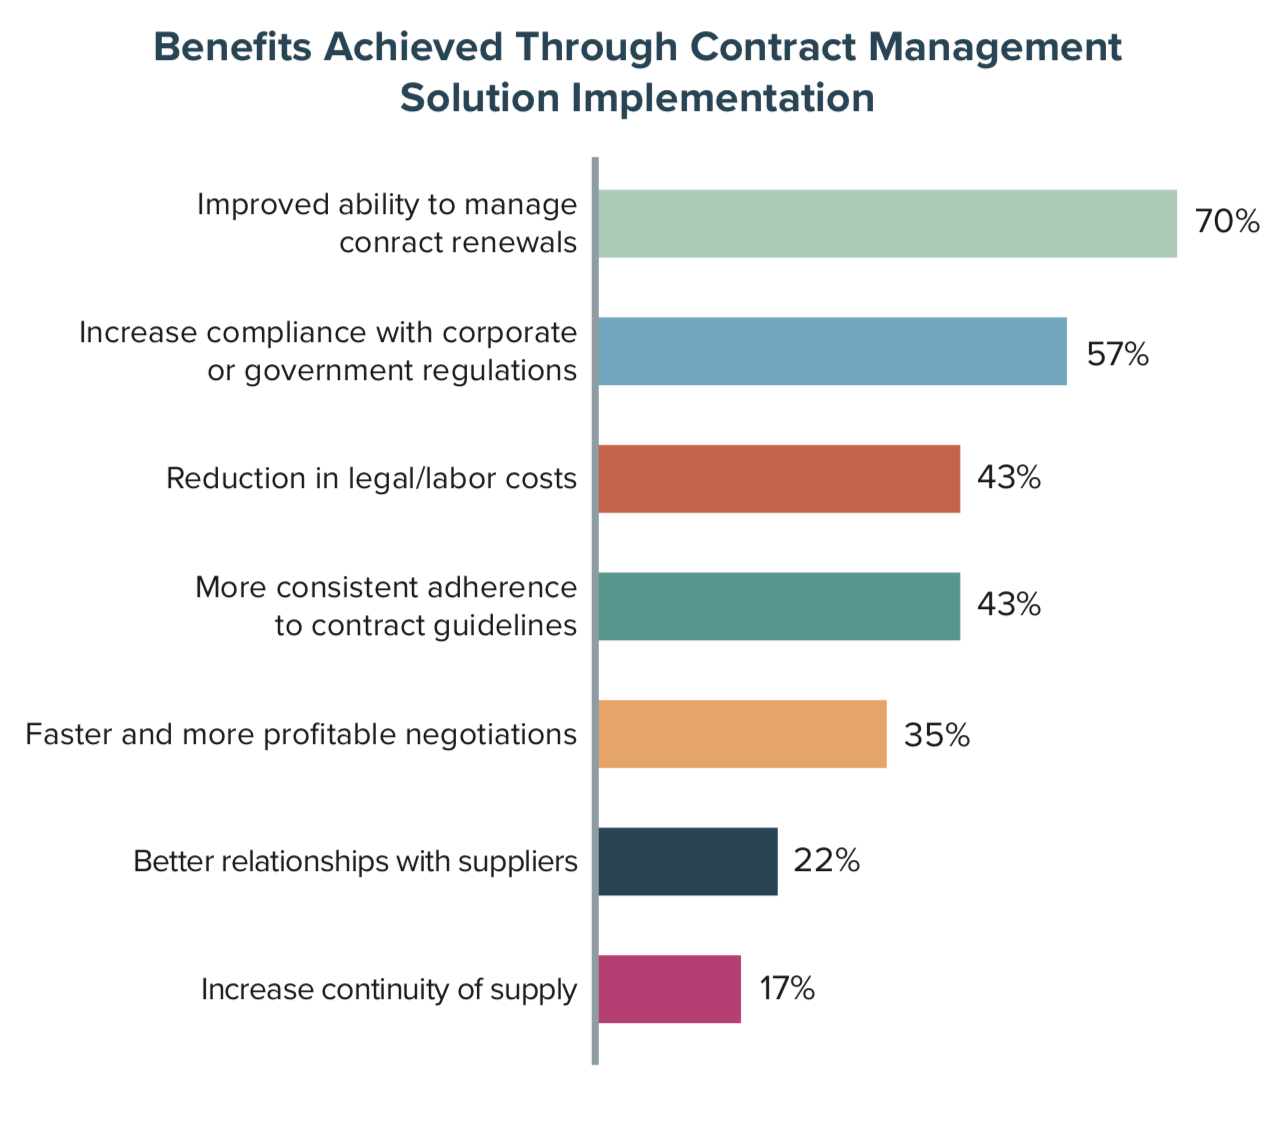 Benefits Achieved Through Contract Management Solution Implementation